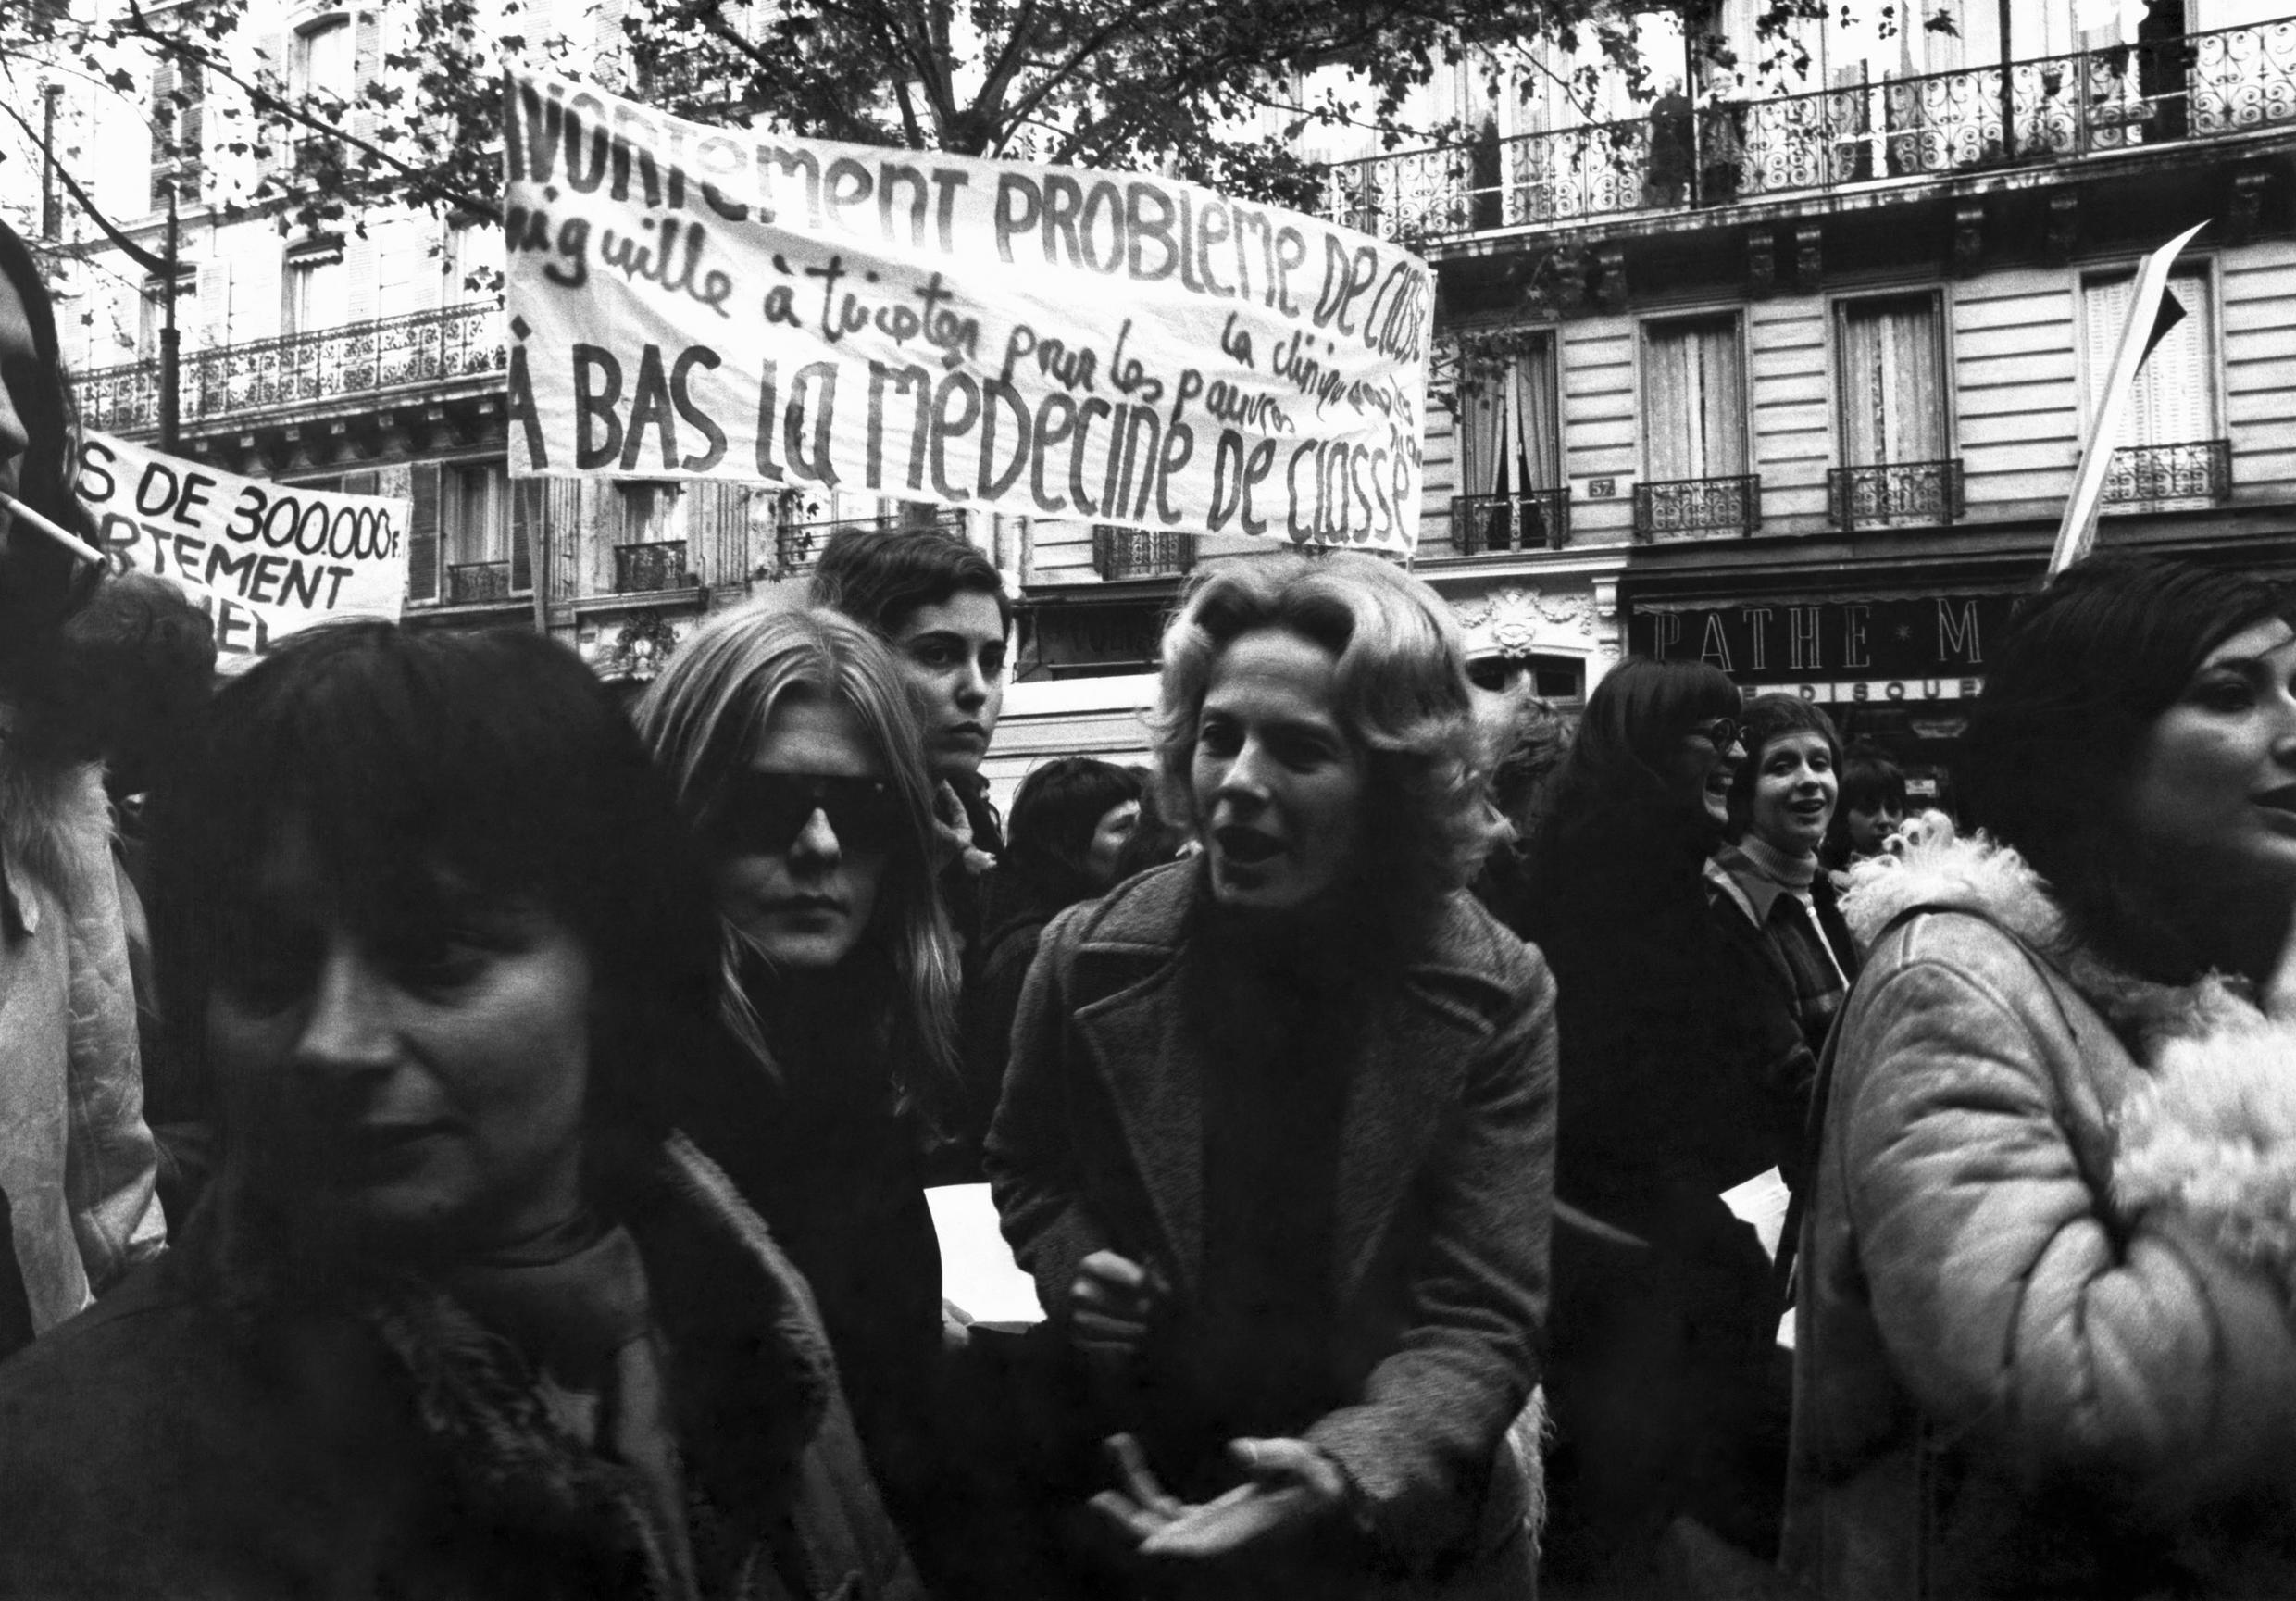 Actress Delphine Seyrig (3rd from left) and director Agnès Varda (L) at a feminist rally in Paris c. 1972